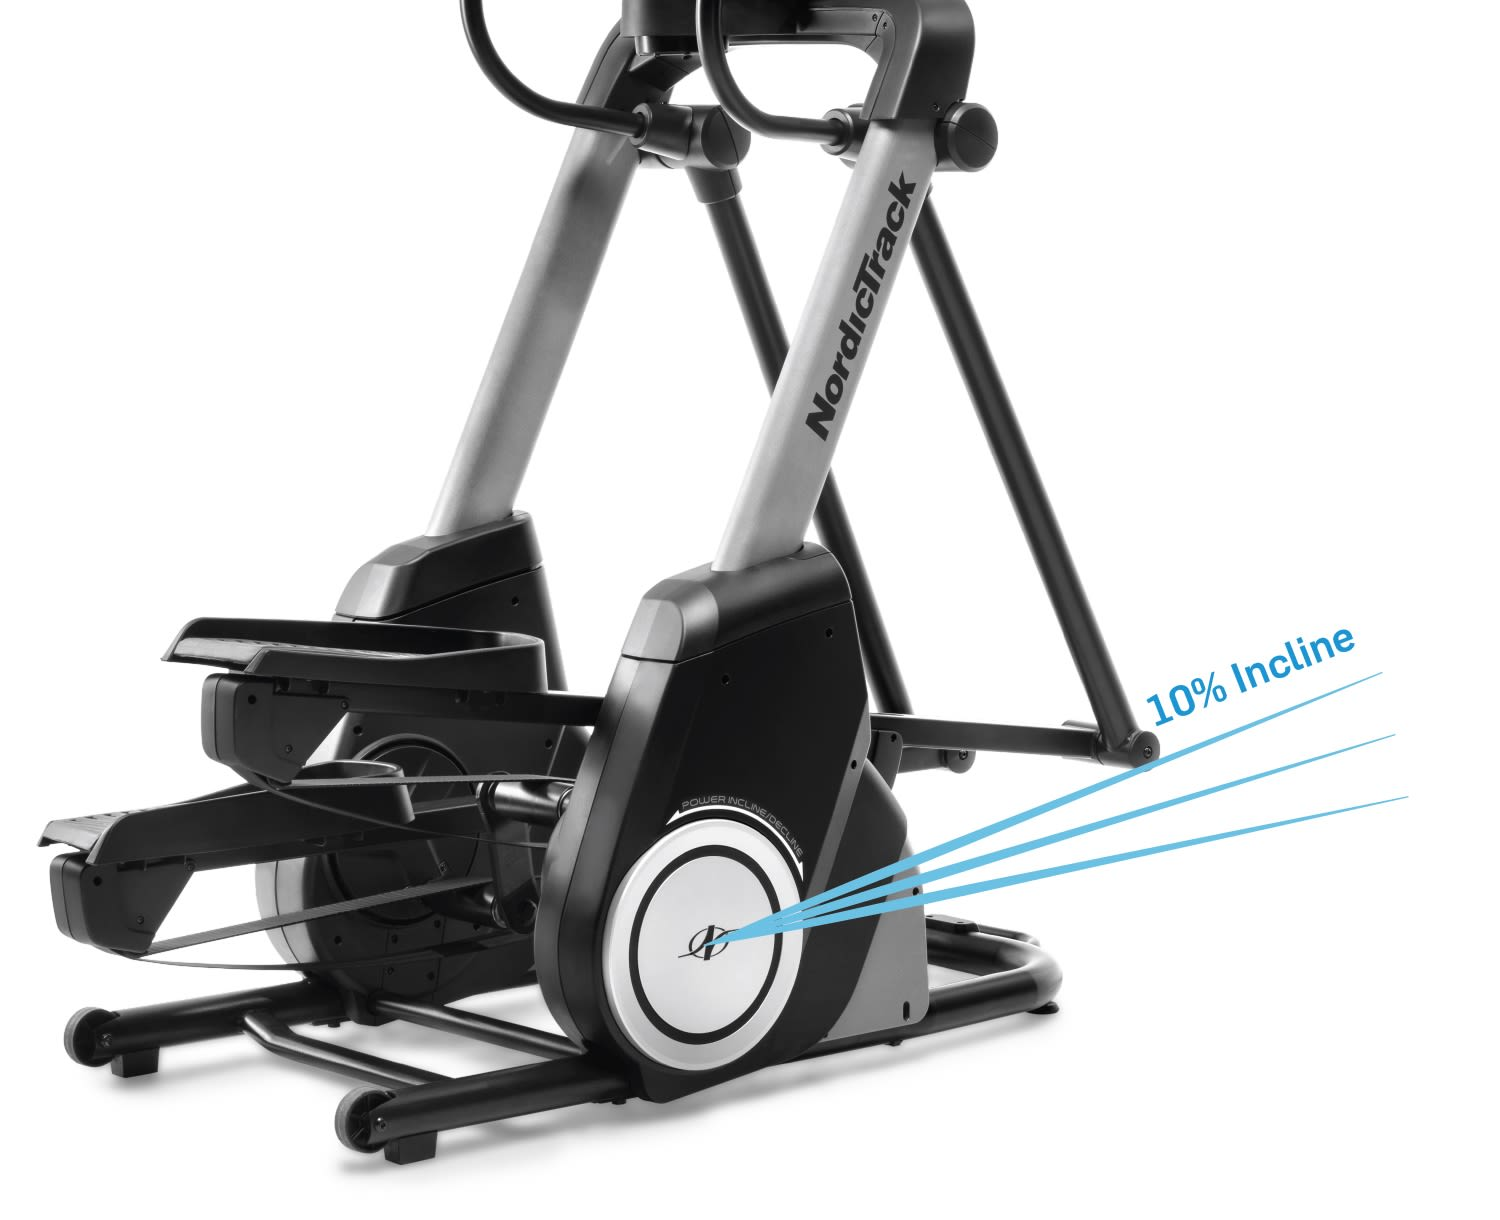 LIVE Resistance and Incline Control